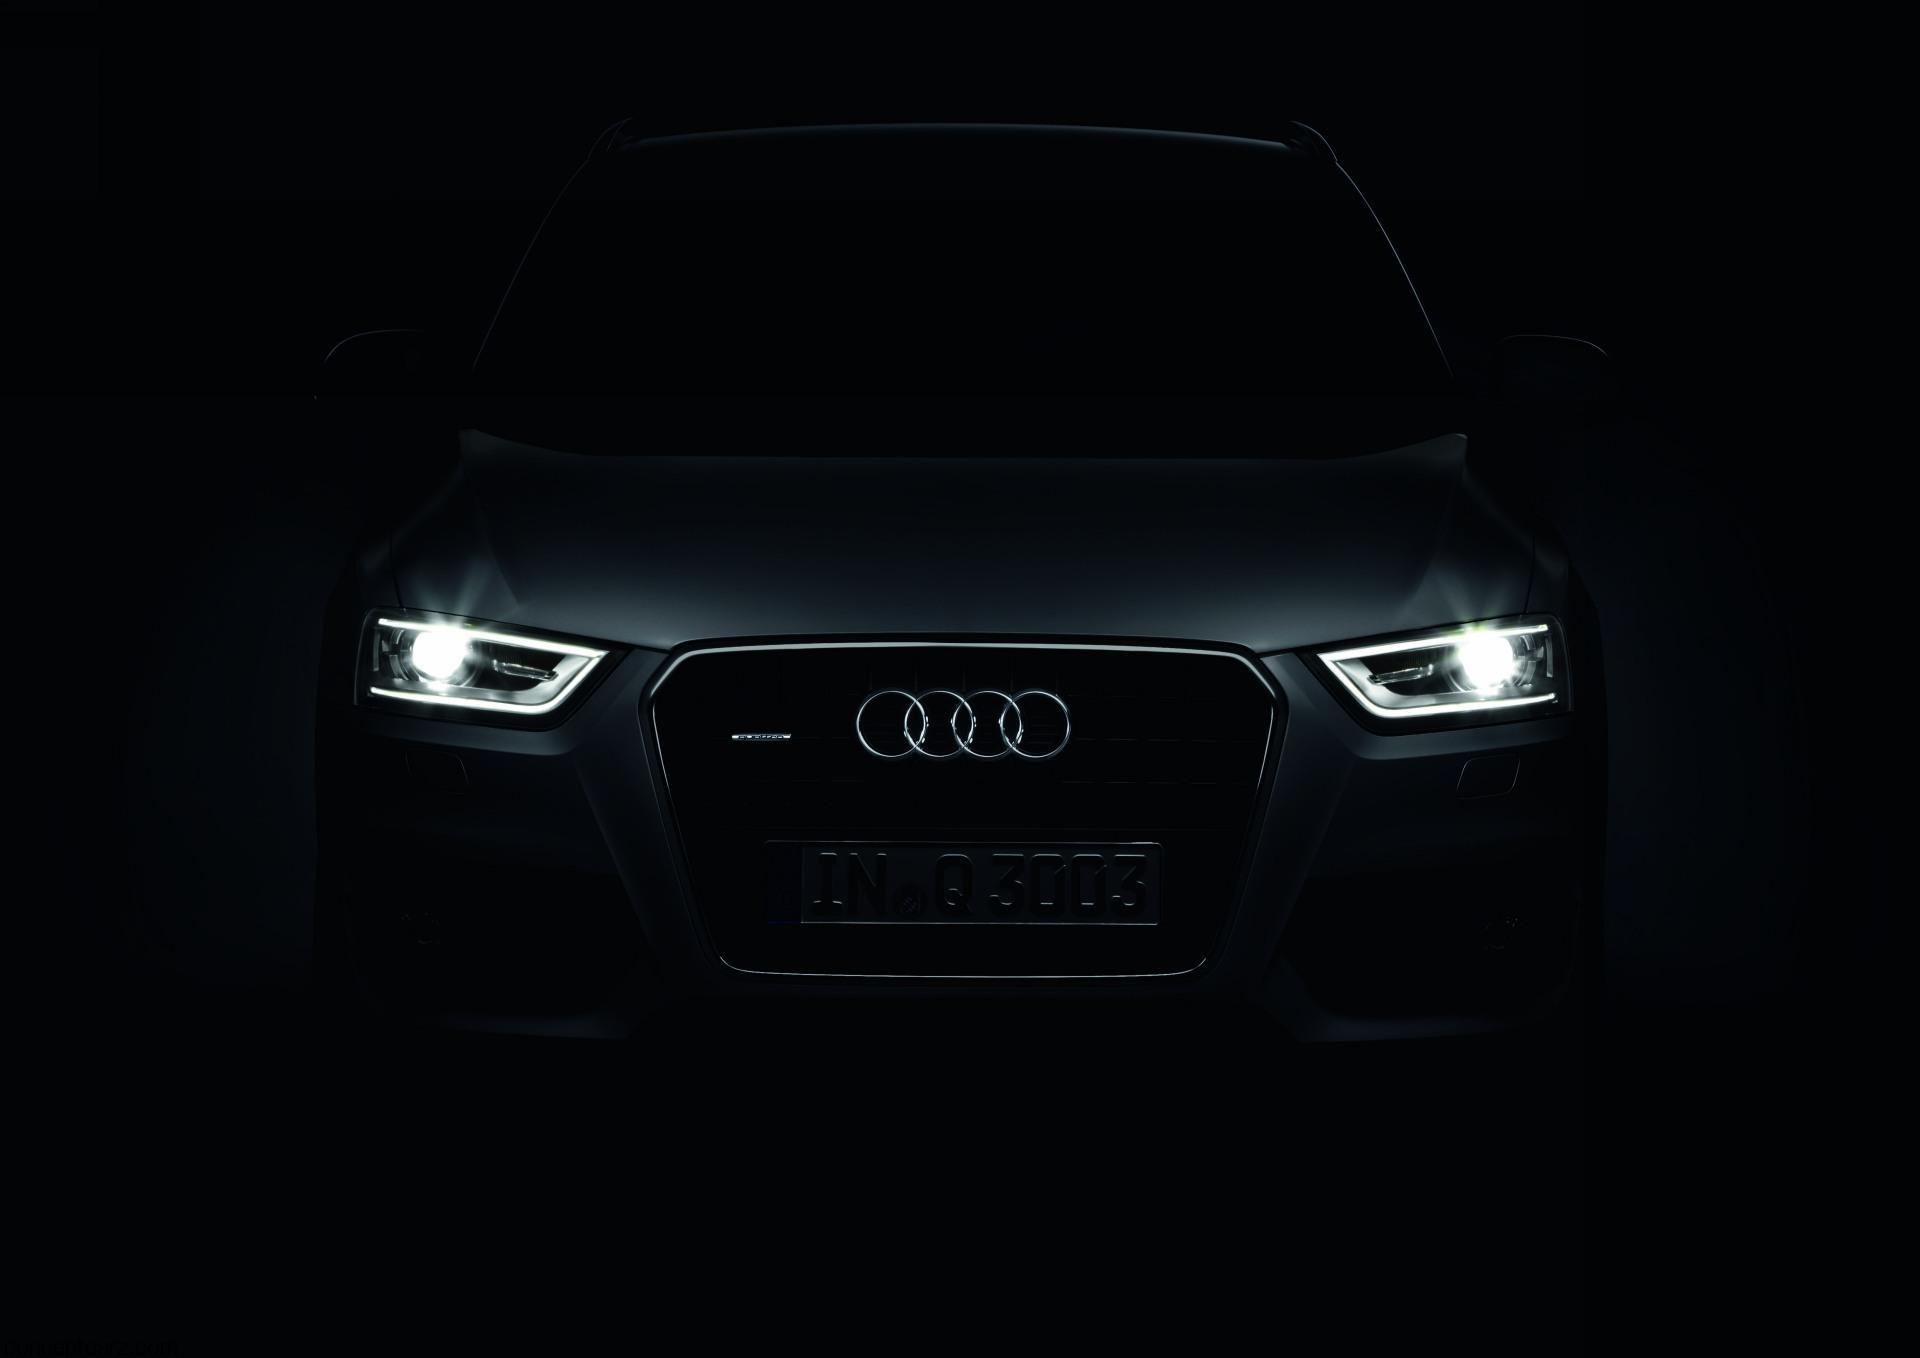 Reliable car Audi q3 wallpapers and images - wallpapers, pictures ...